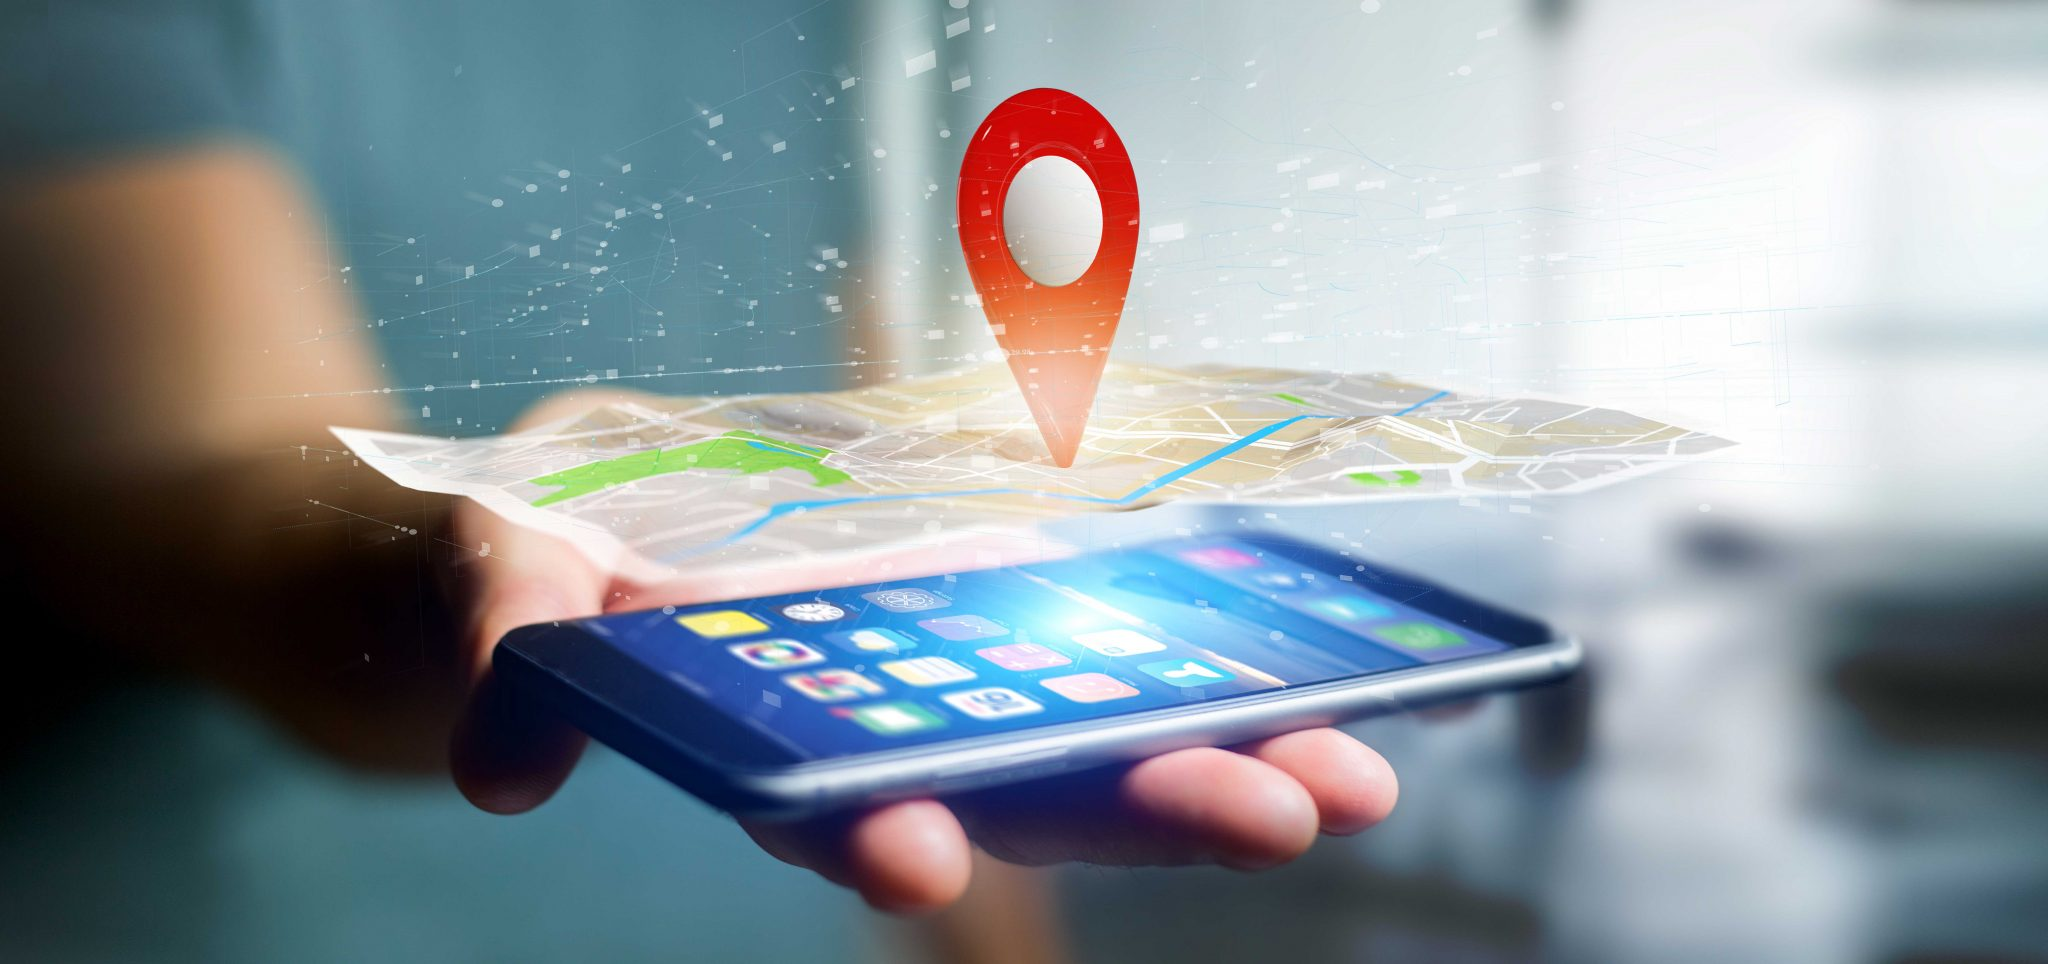 Location marker on map - Geofencing technique